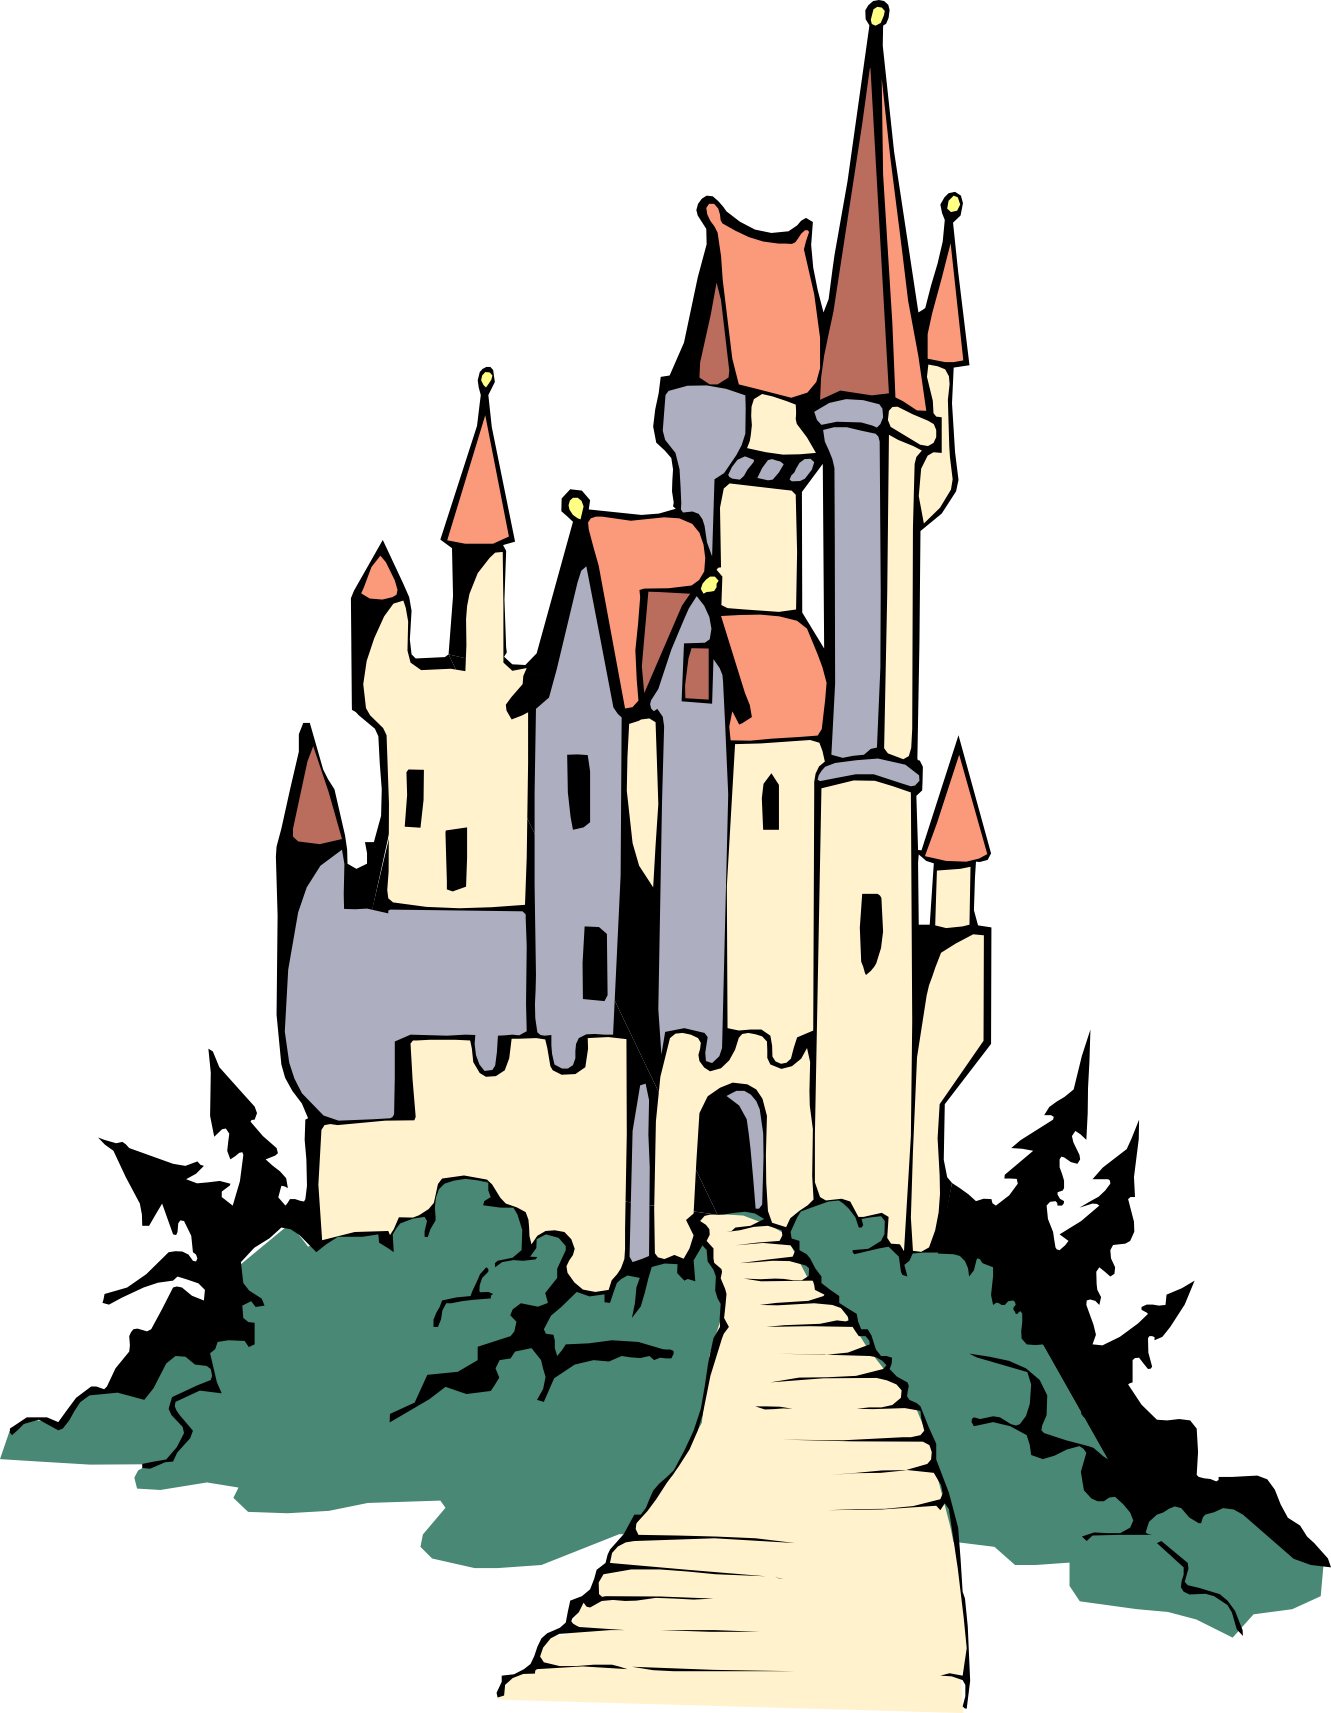 Neuschwanstein castle clipart #4